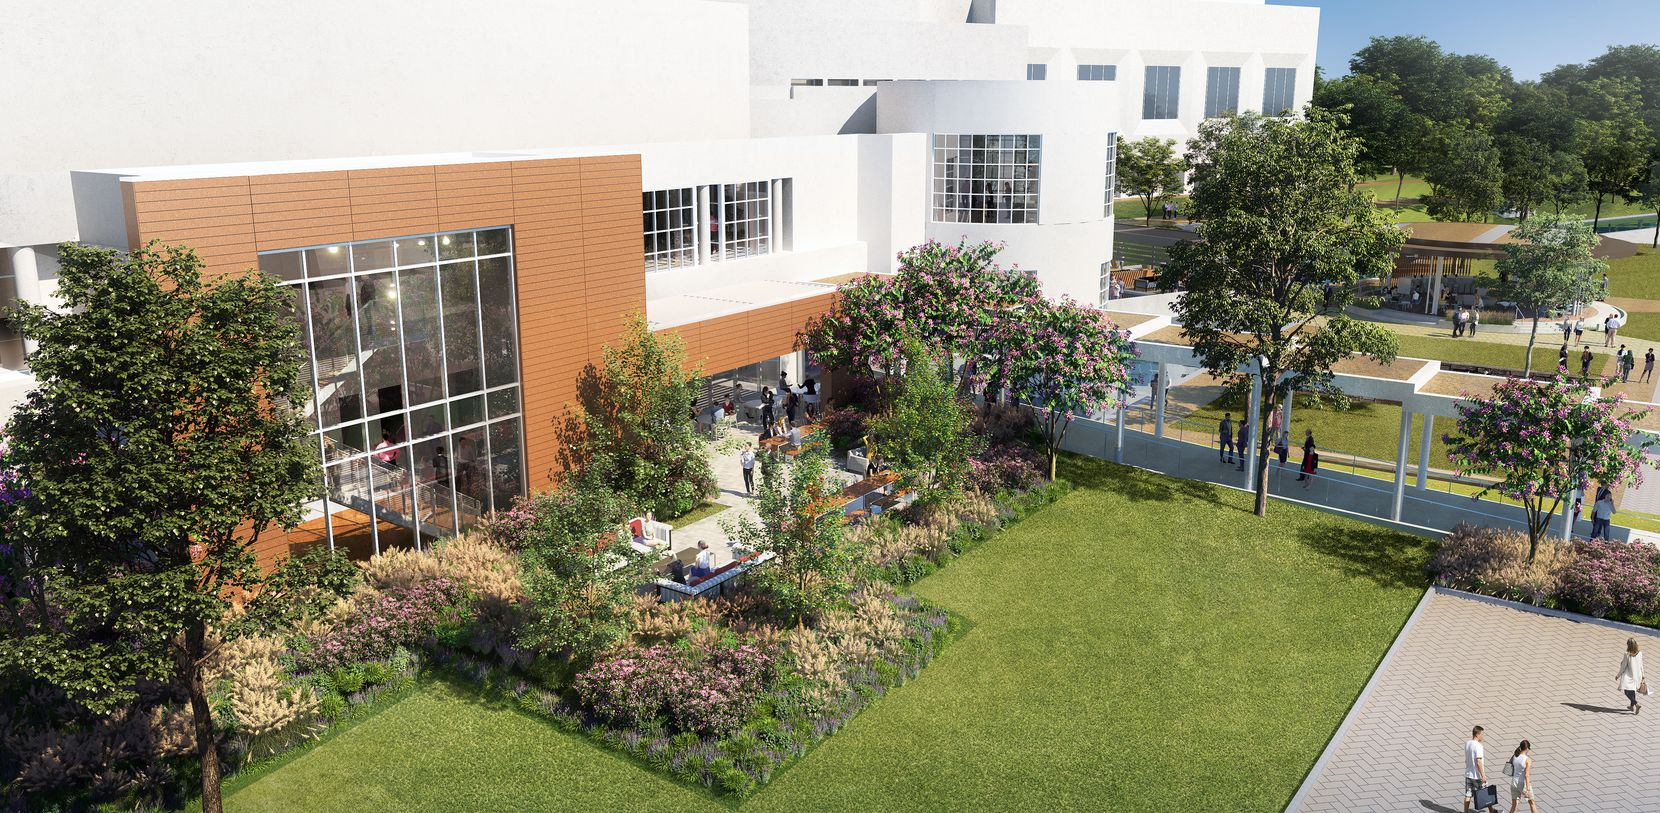 GlenStar plans to add new outdoor space to the Solana campus.